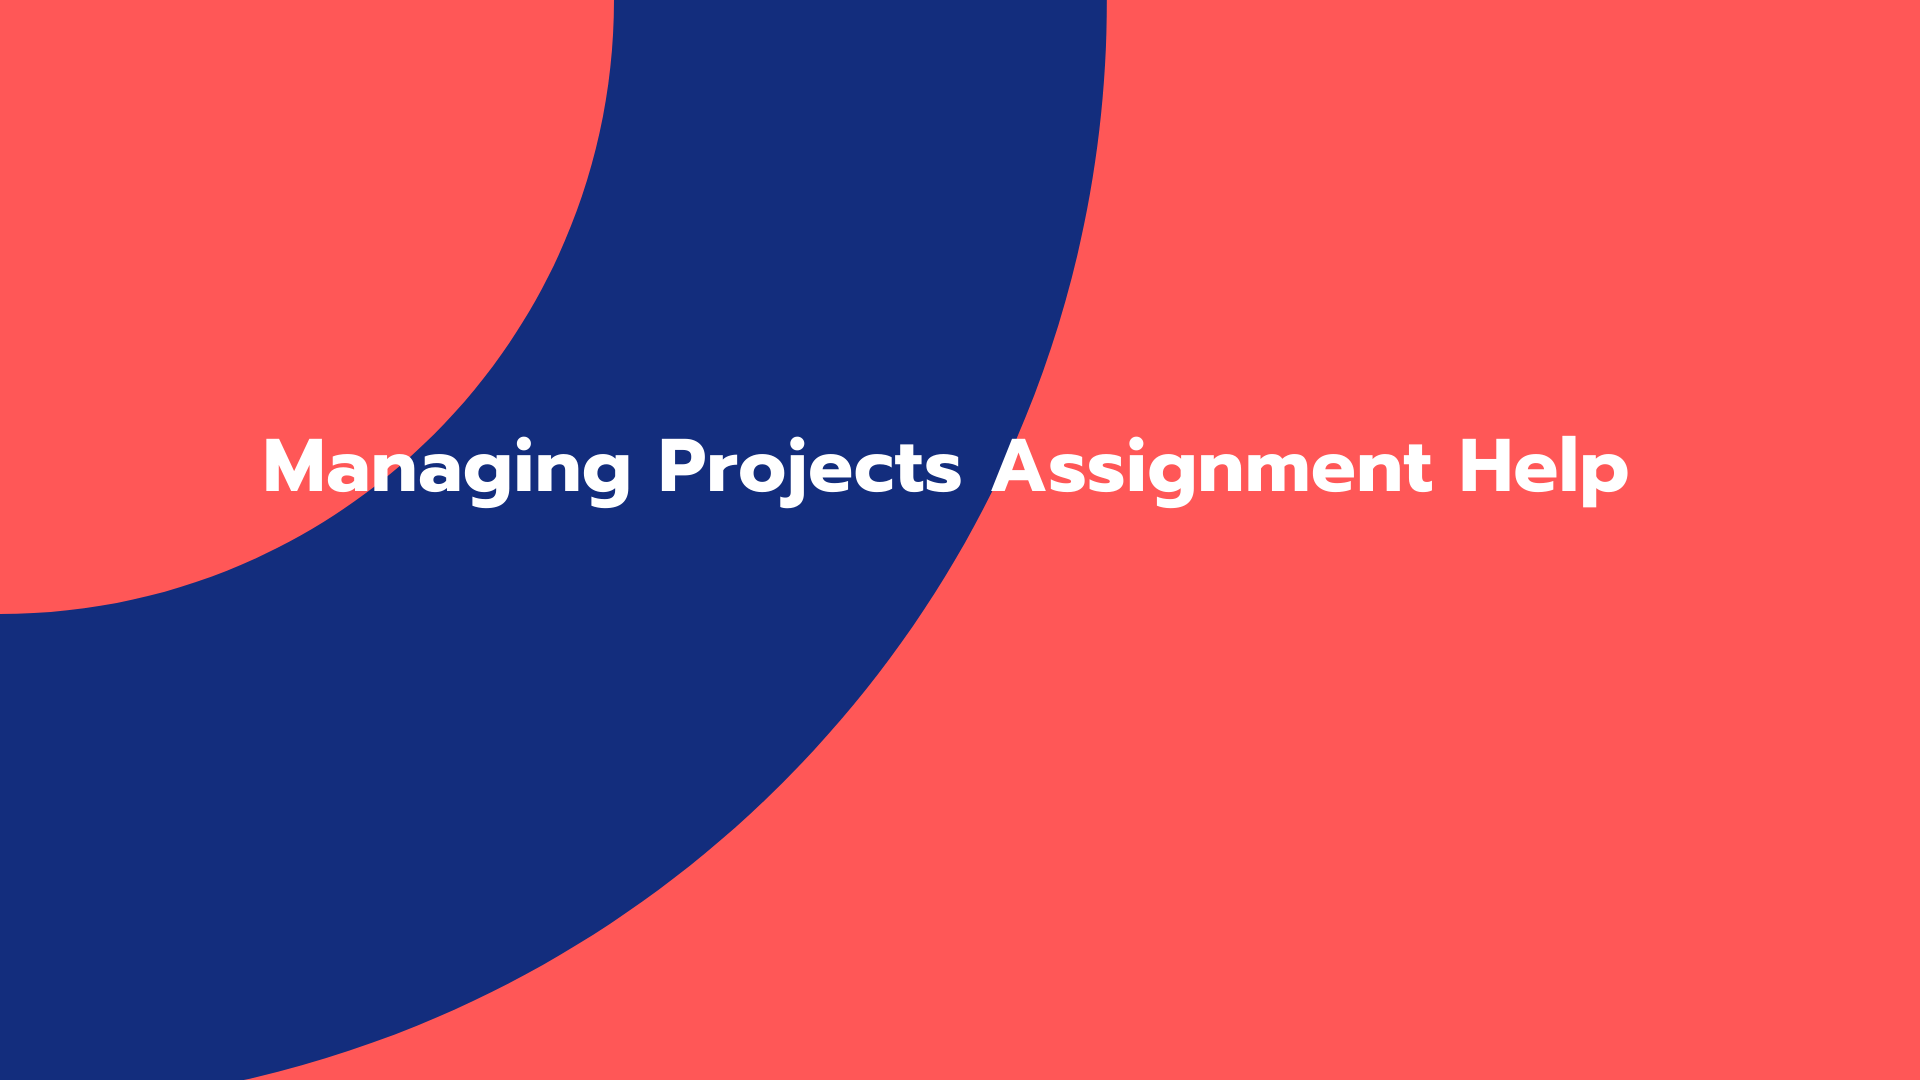 Managing Projects Assignment Help